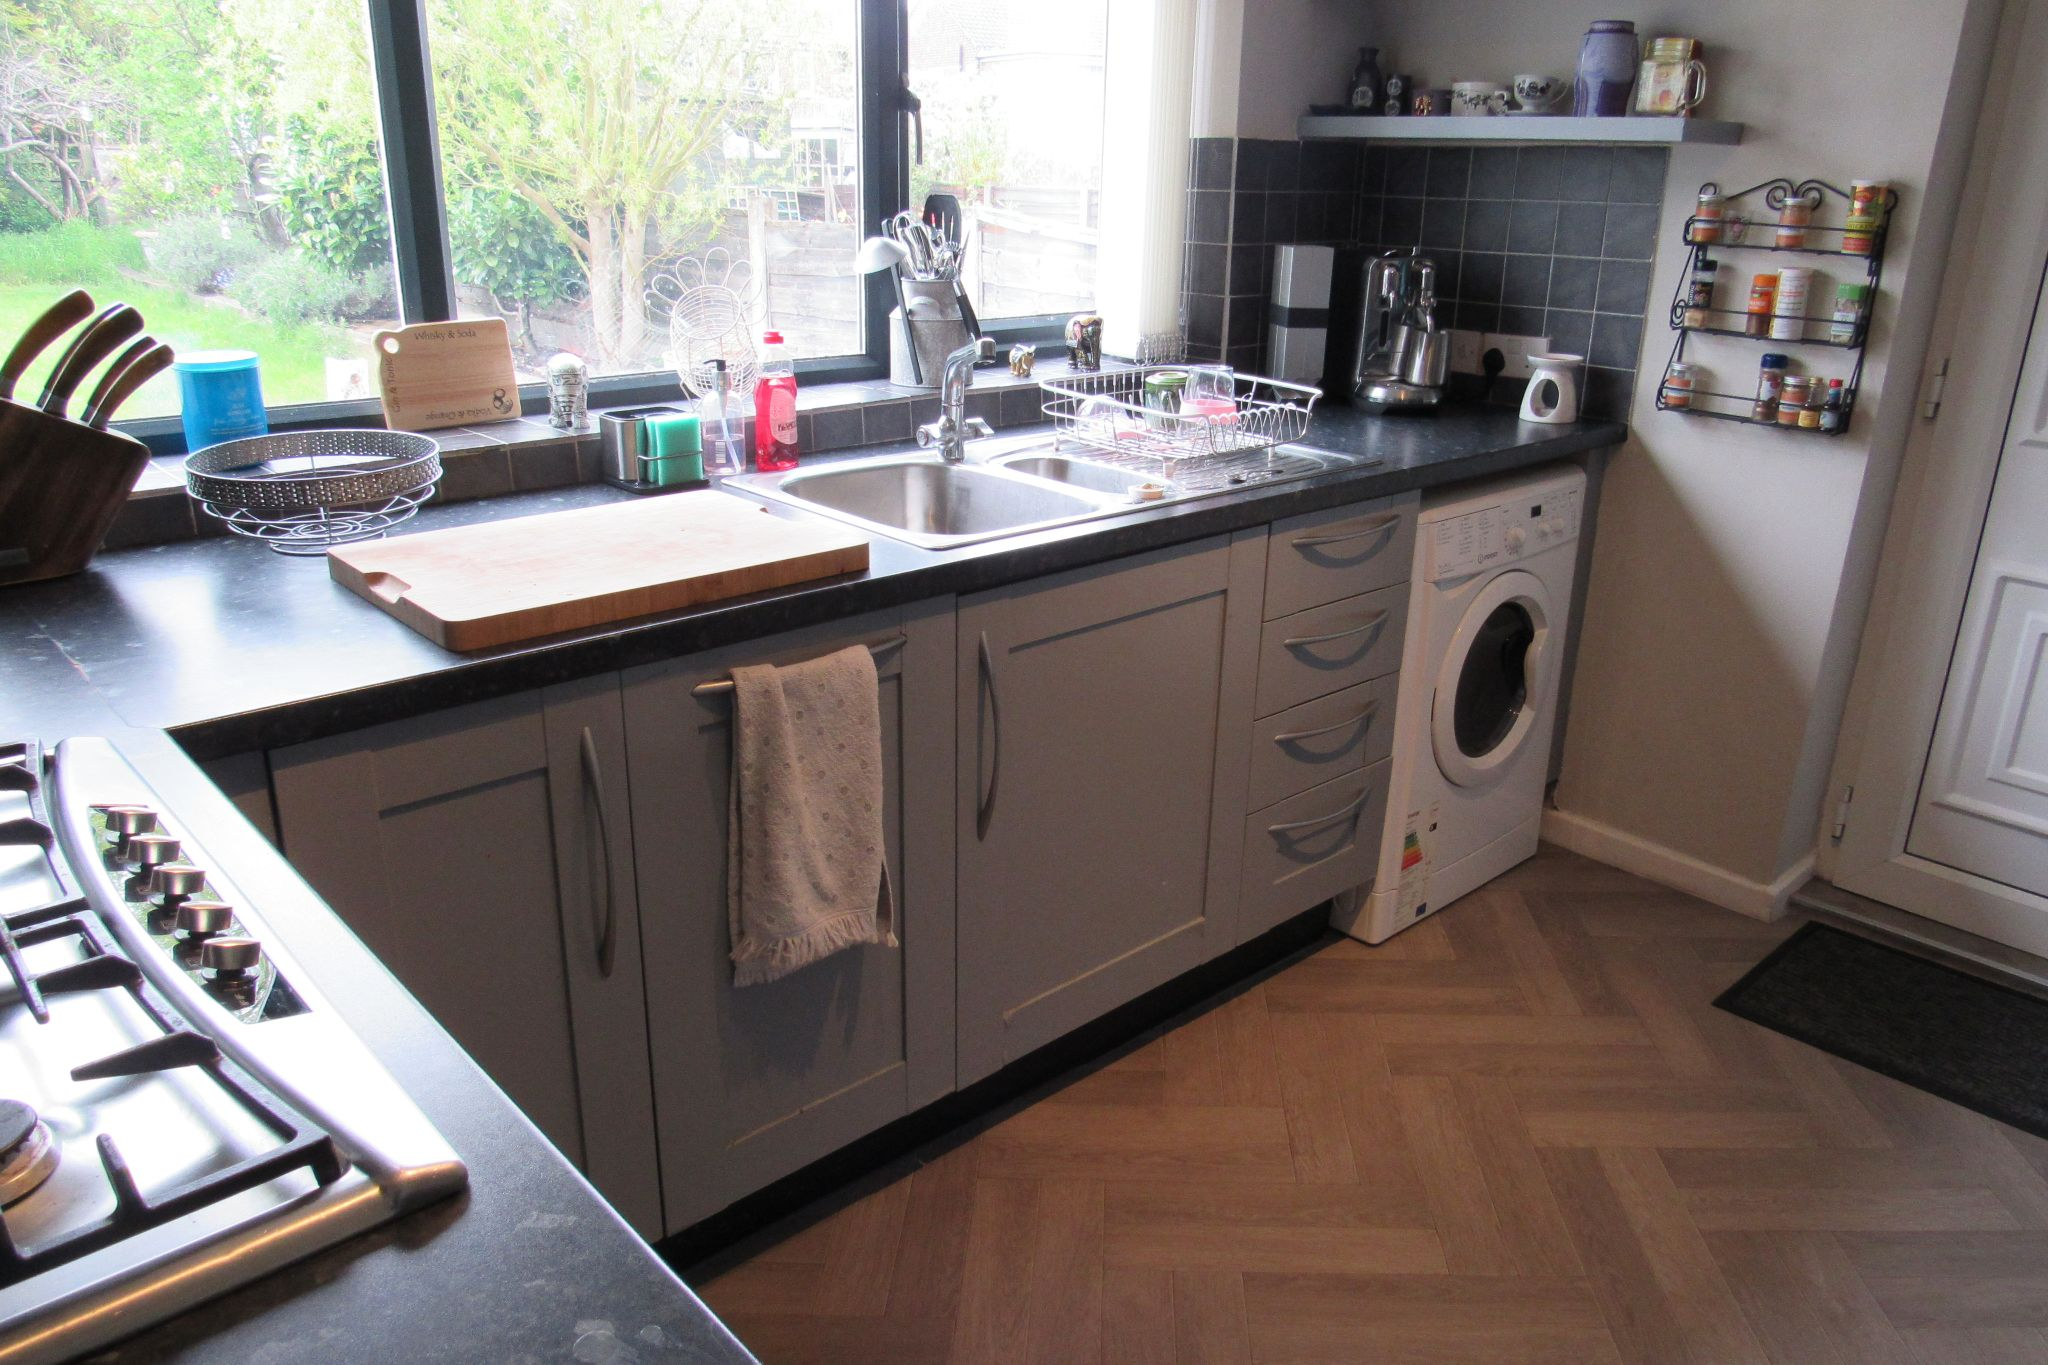 3 bedroom detached house For Sale in Manchester - Photograph 9.